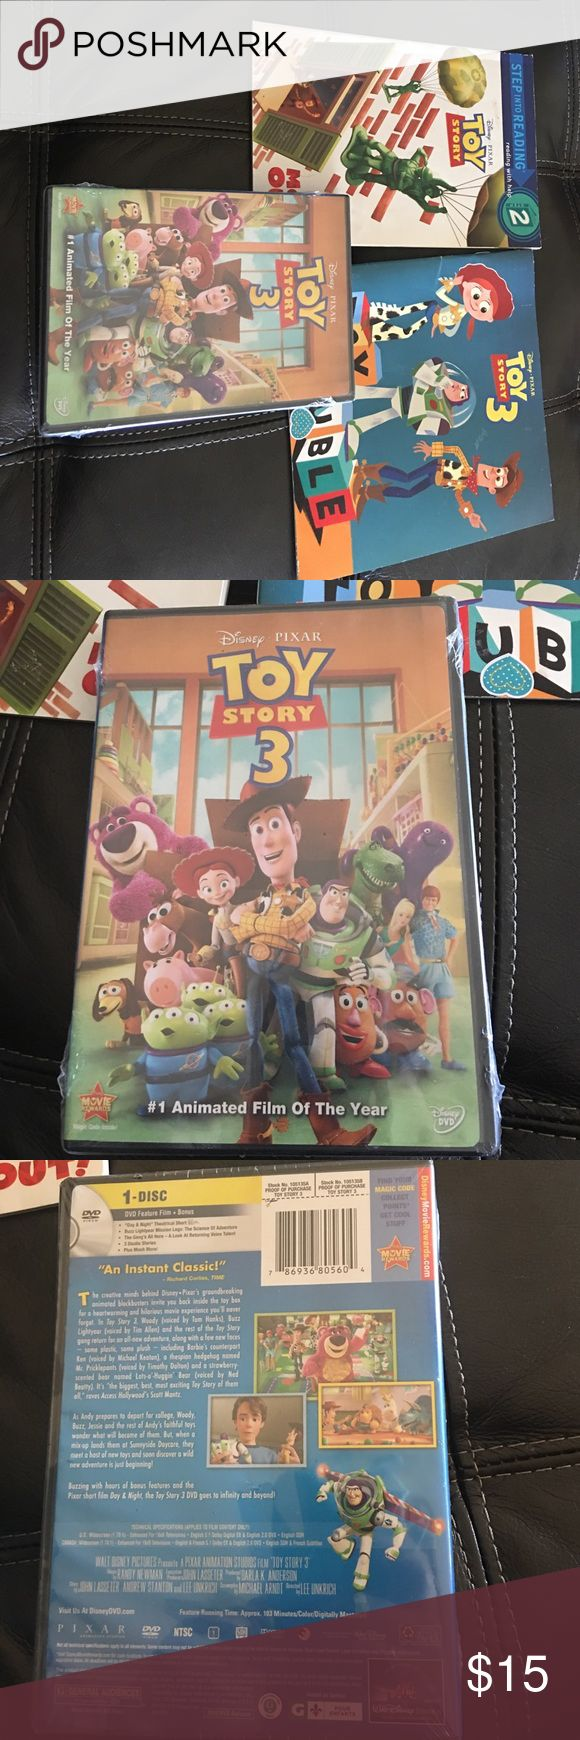 Toy story 3 movie and books Toy story DVD new and 2 books Disney Other